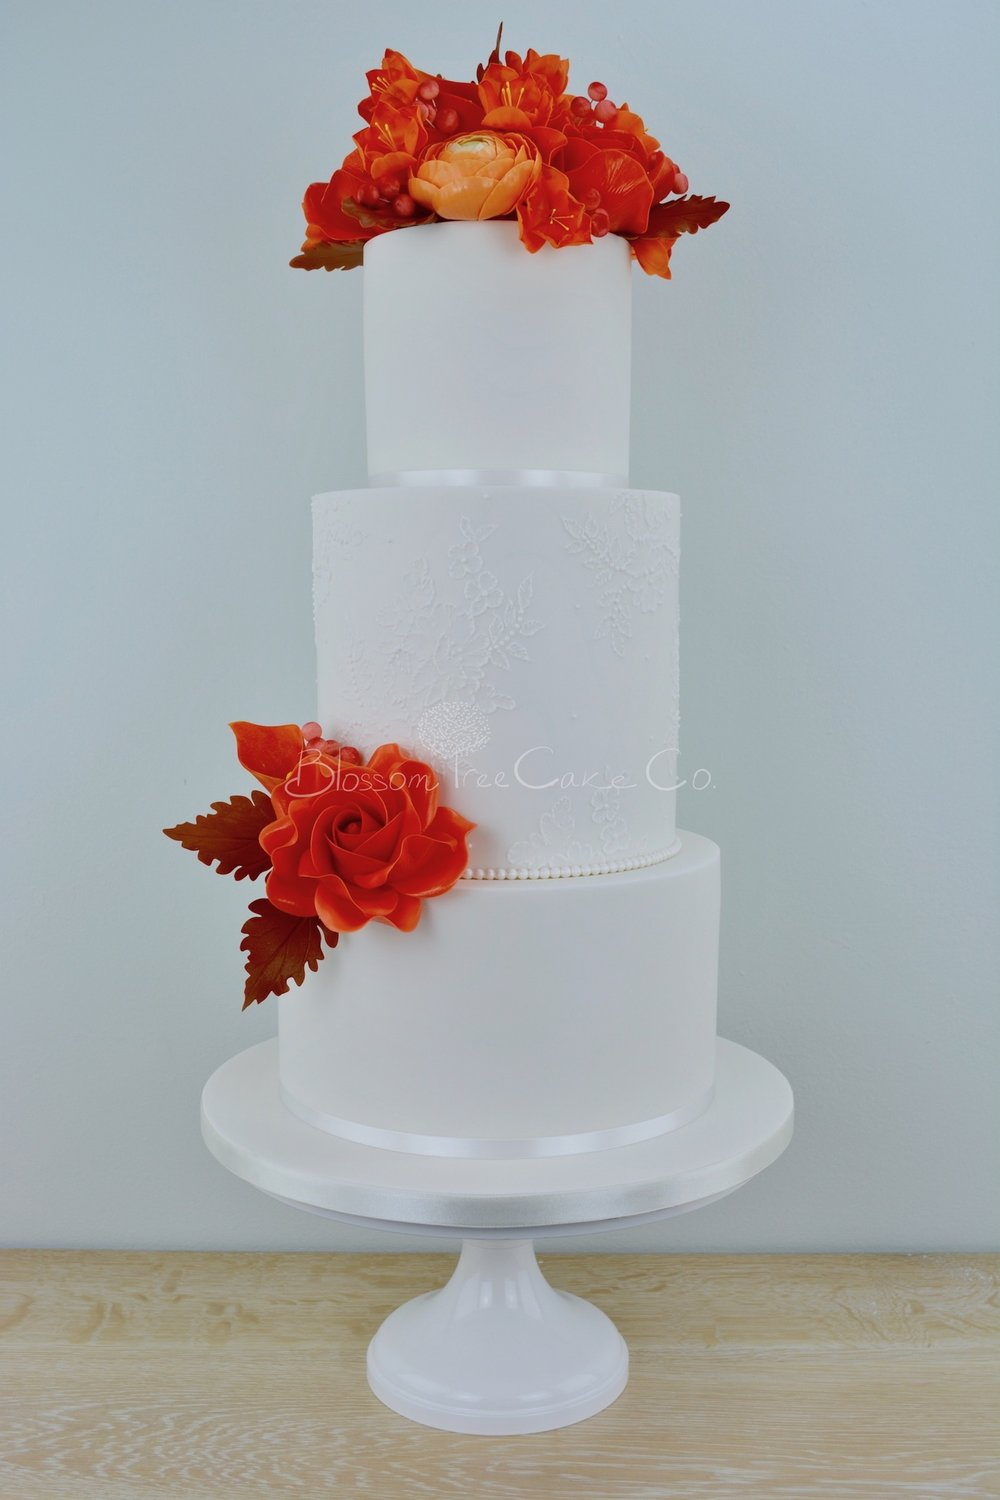 Autumn Lace wedding cake by Blossom Tree Cake Company Harrogate North Yorkshire